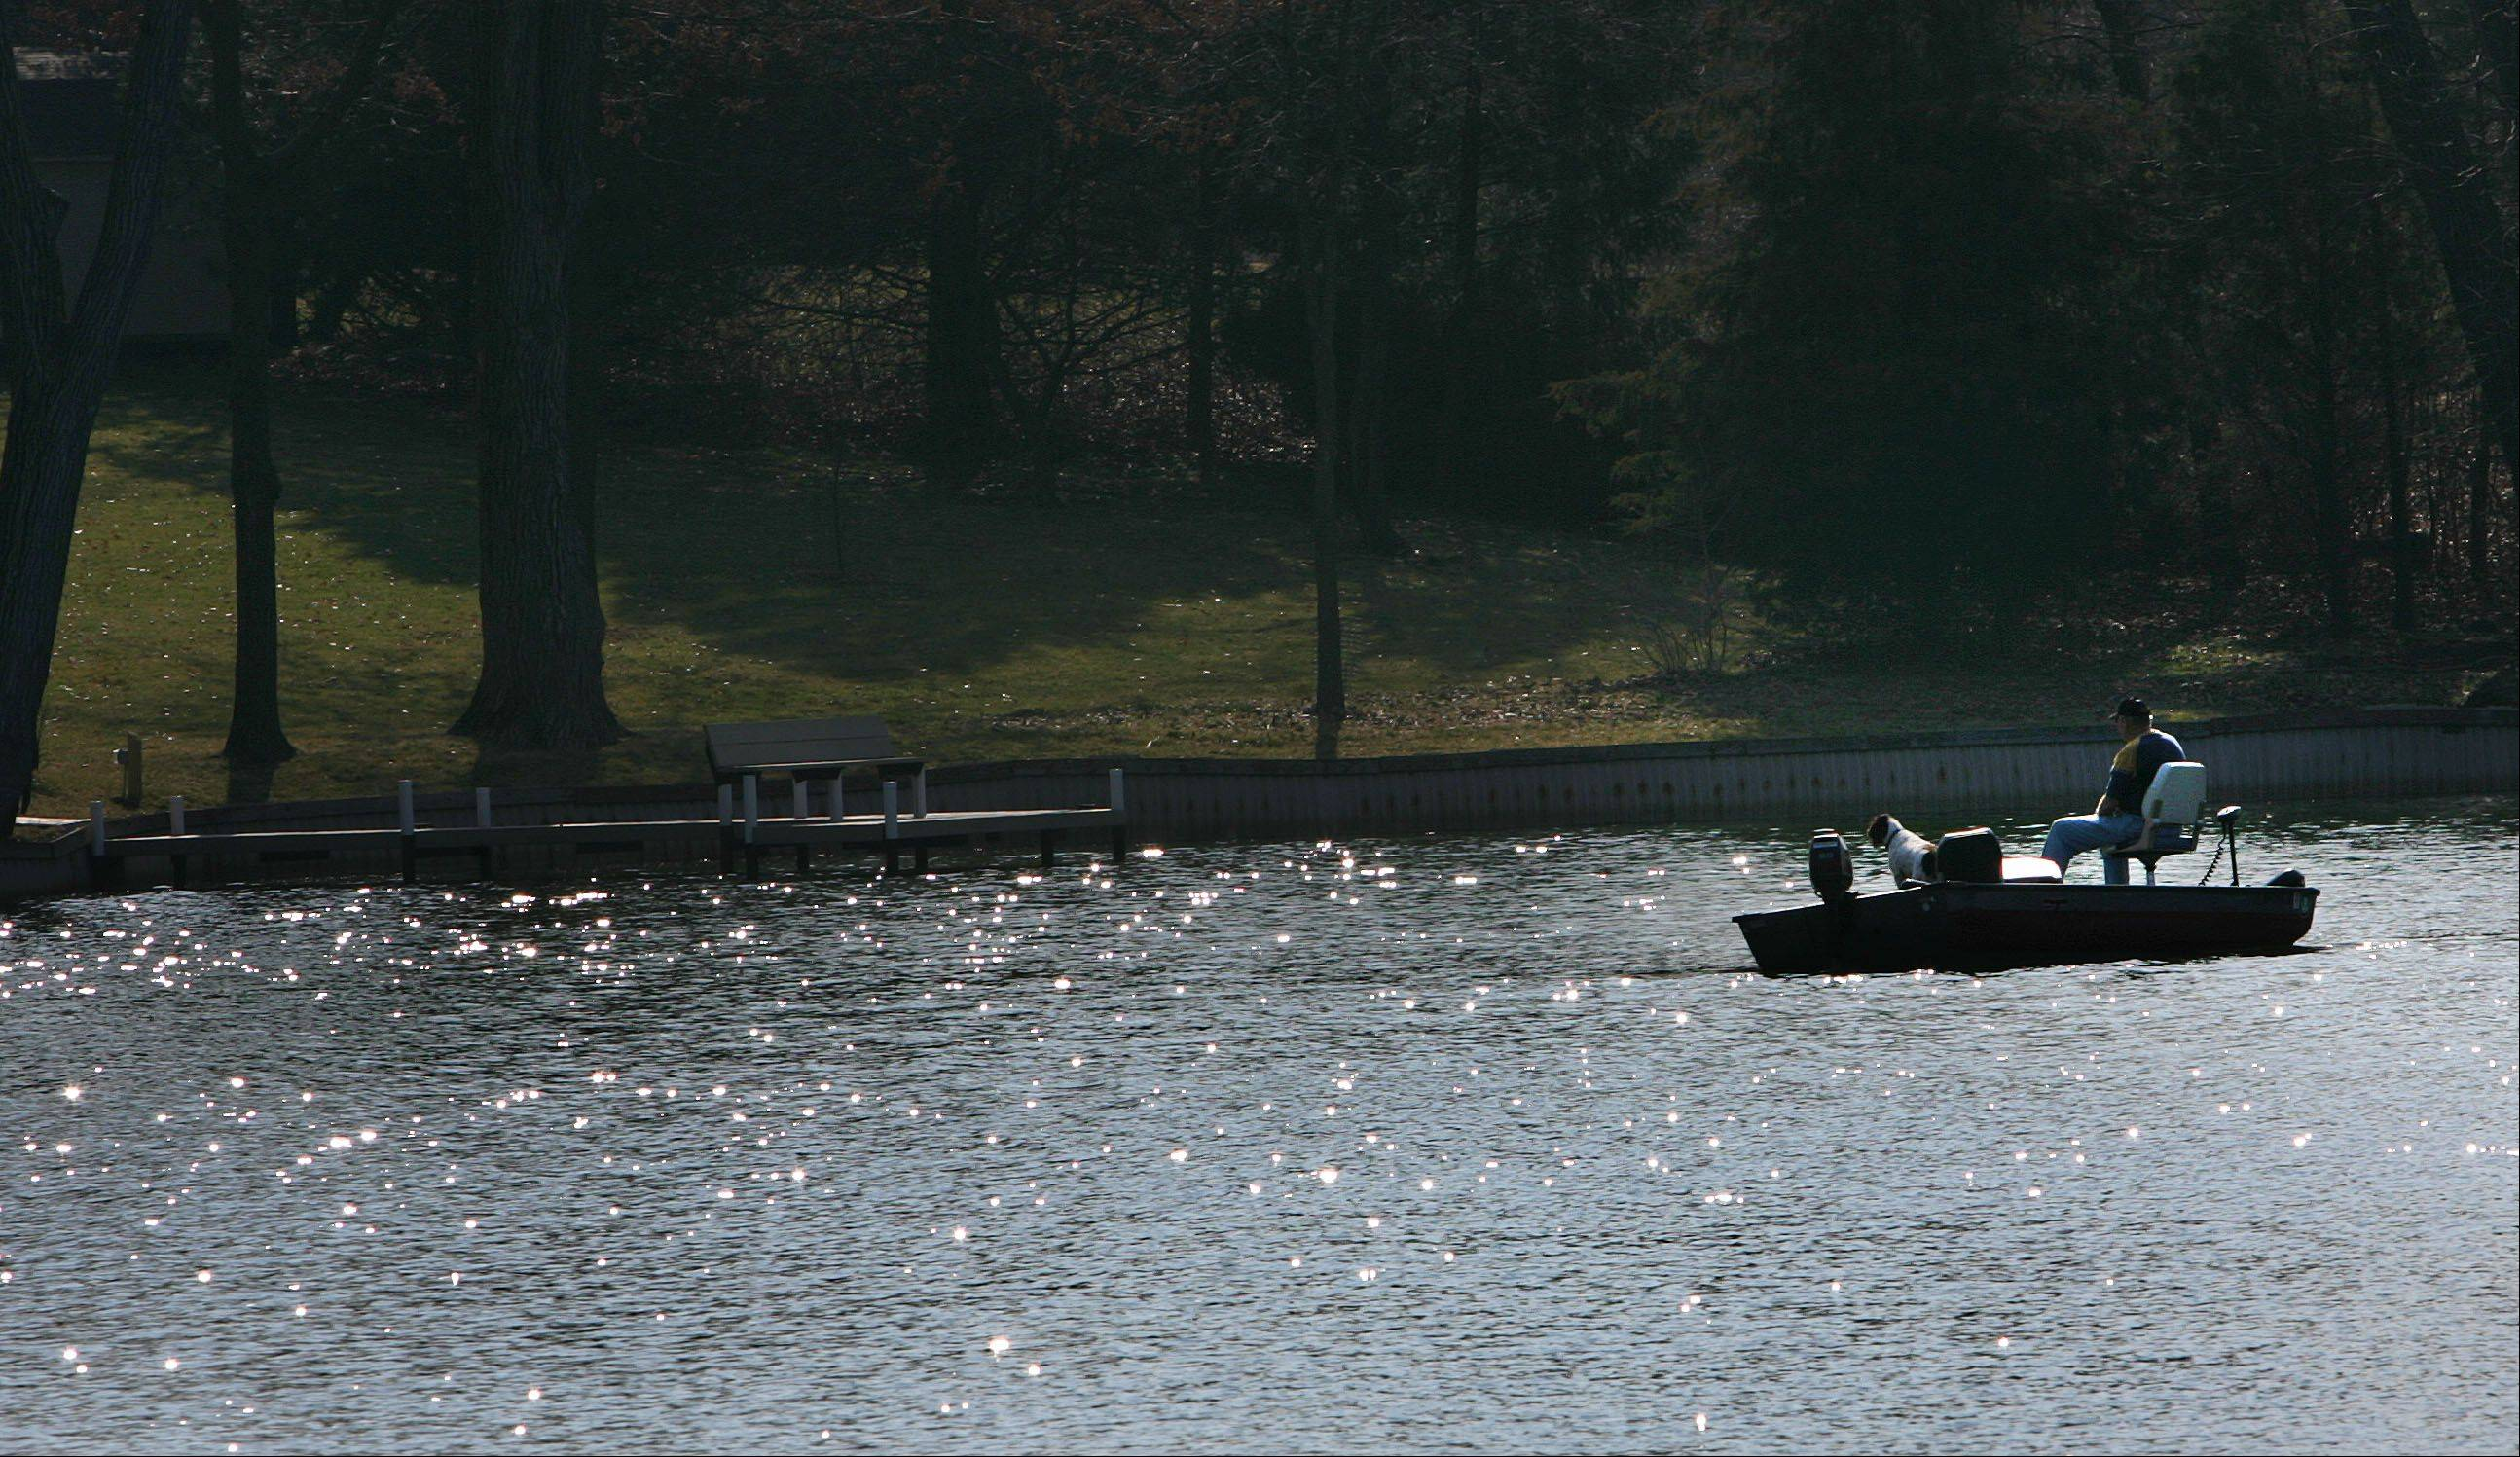 It's not too early in the season for a fisherman to be on Countryside Lake.